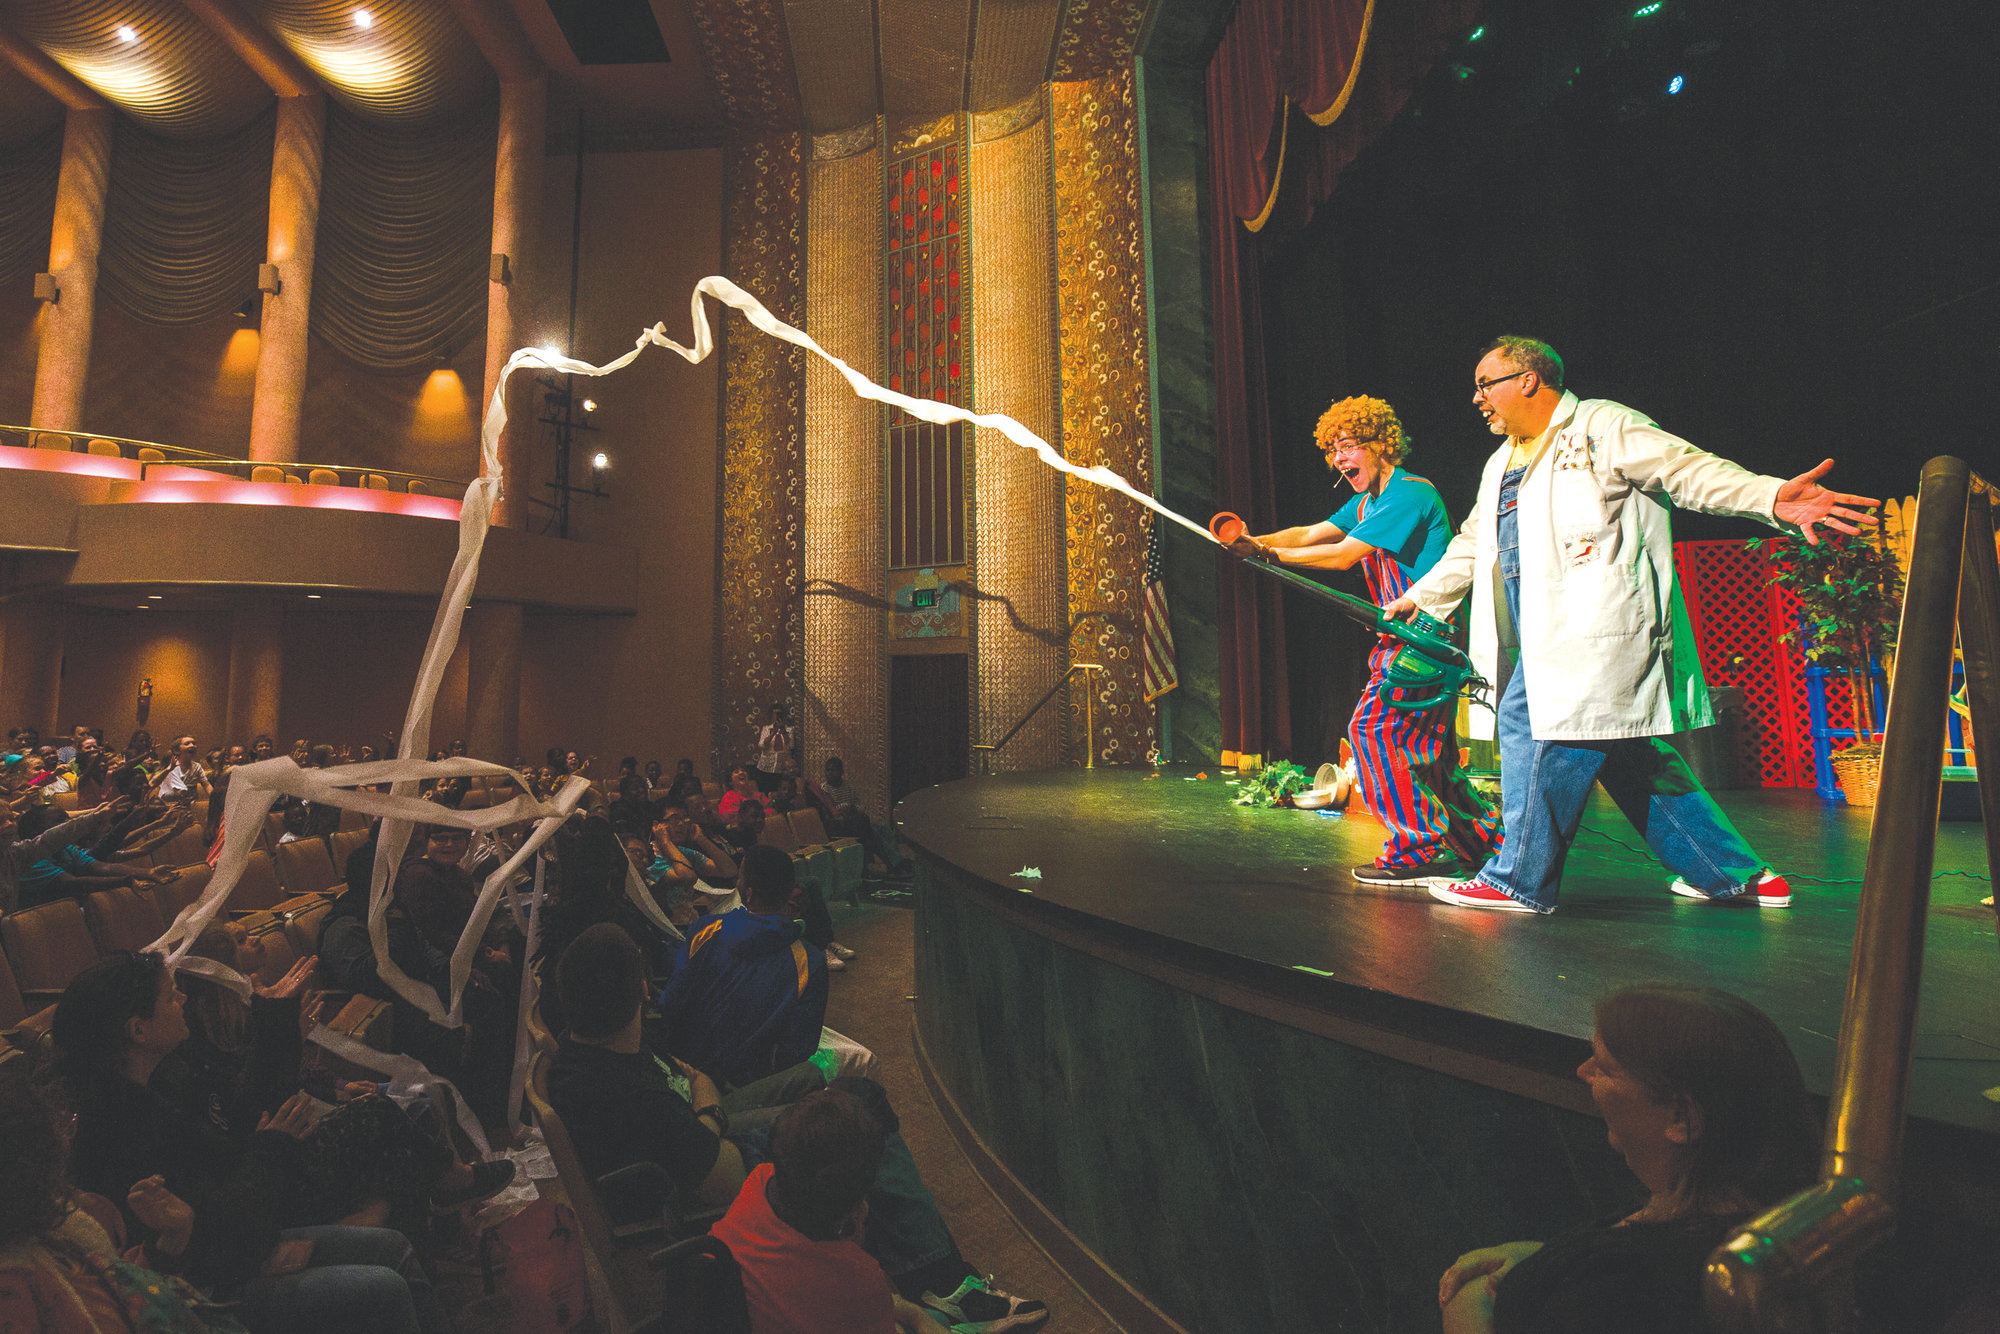 The Hillbilly Science show drew a large crowd at the Opera House last year.